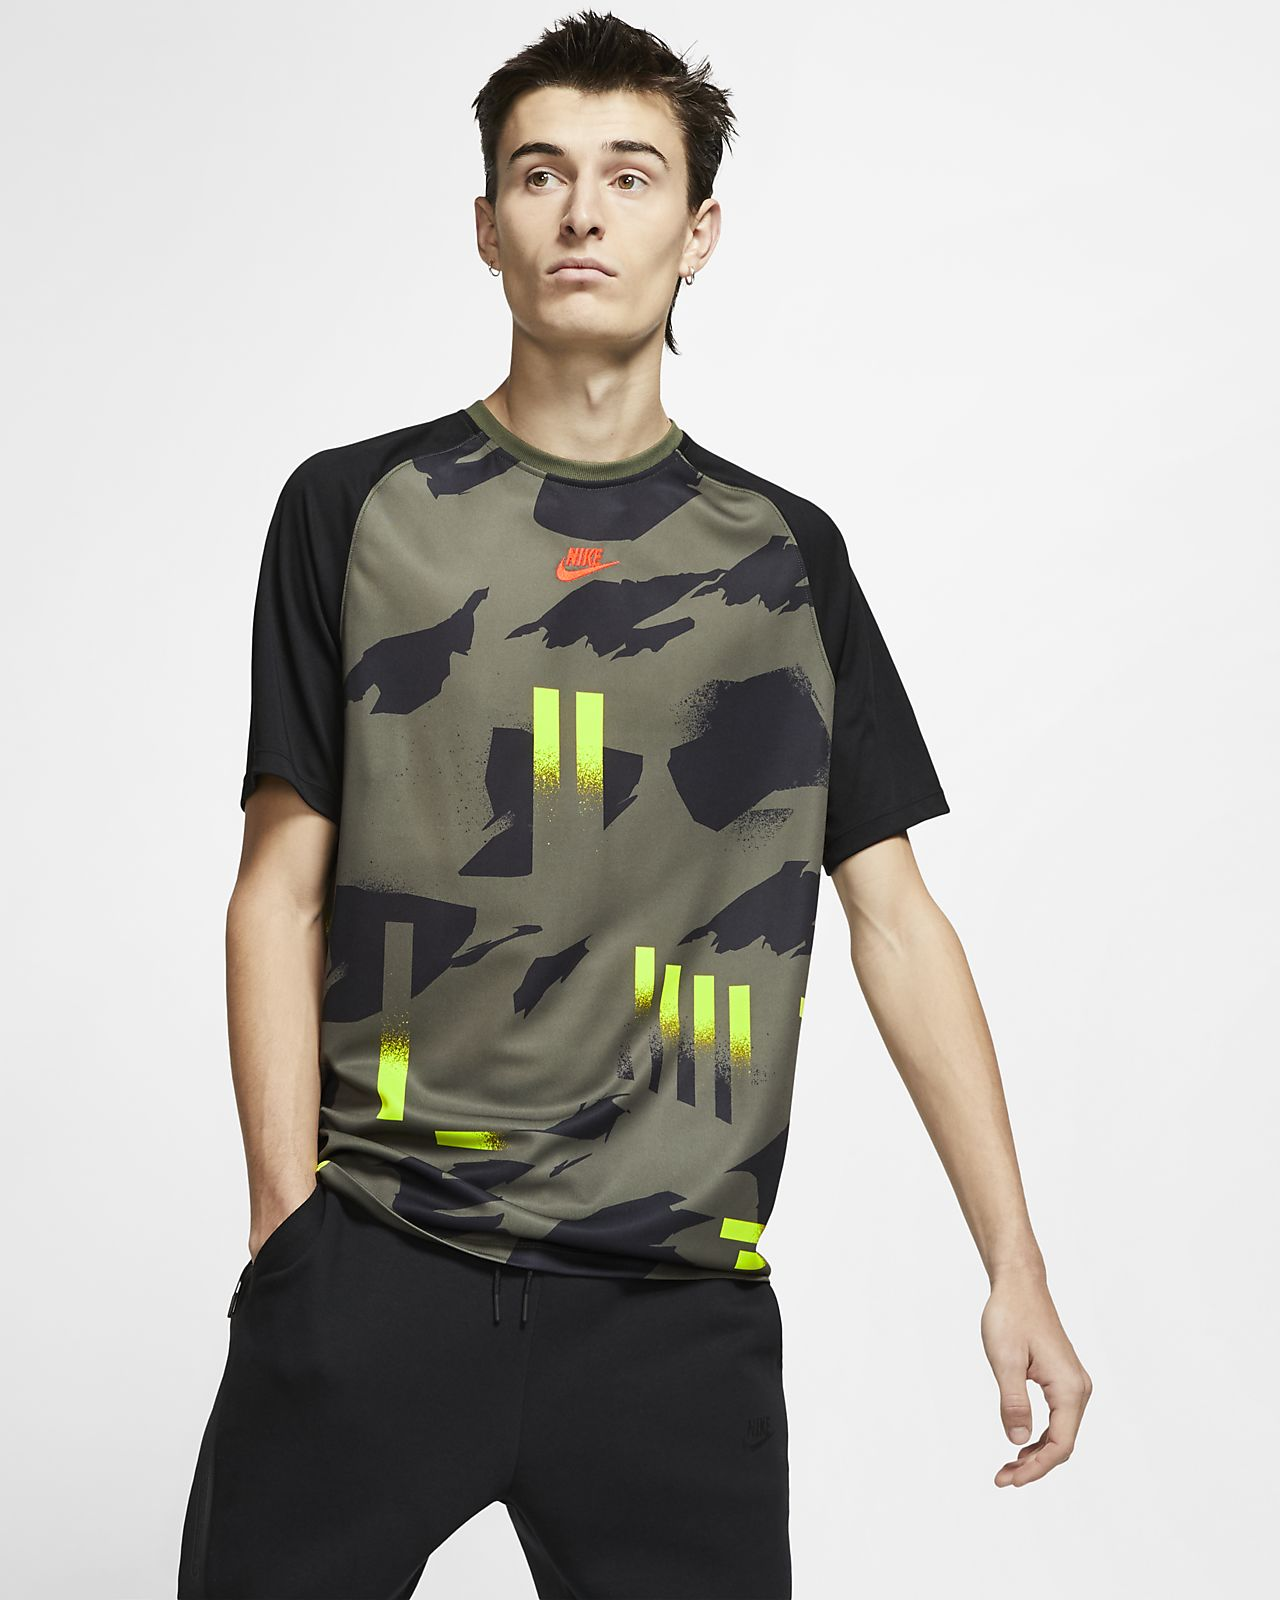 4857948a Low Resolution Nike Sportswear Men's Top Nike Sportswear Men's Top